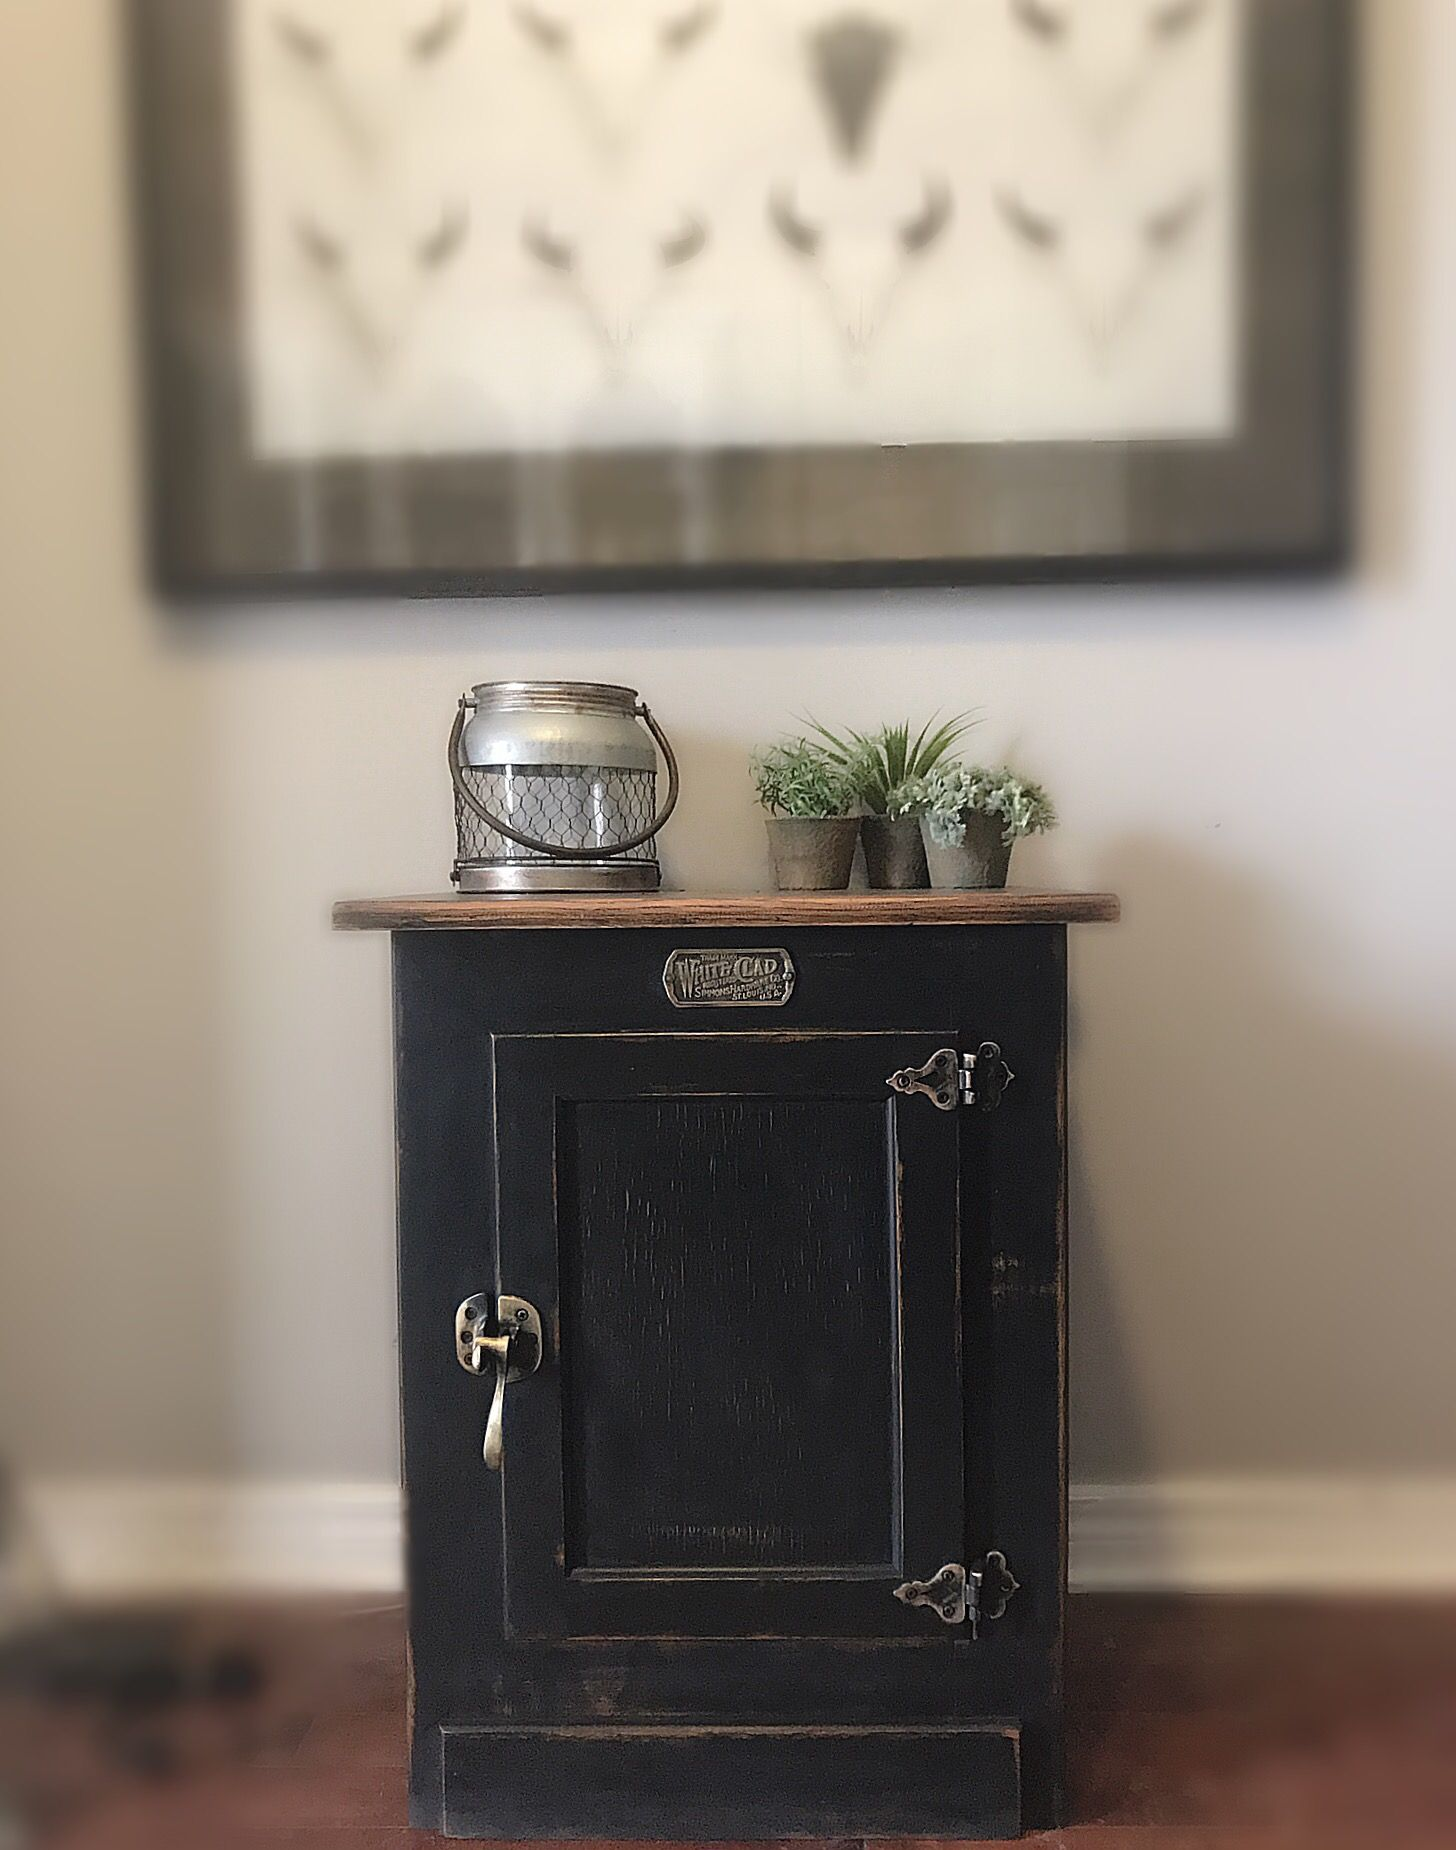 Unique Vintage Black Cabinet White Clad Solid Wood Icebox Tv Stand Cabinet Credenza Cabinet End Table Vintage Ice Box End Table Makeover Chalk Furniture